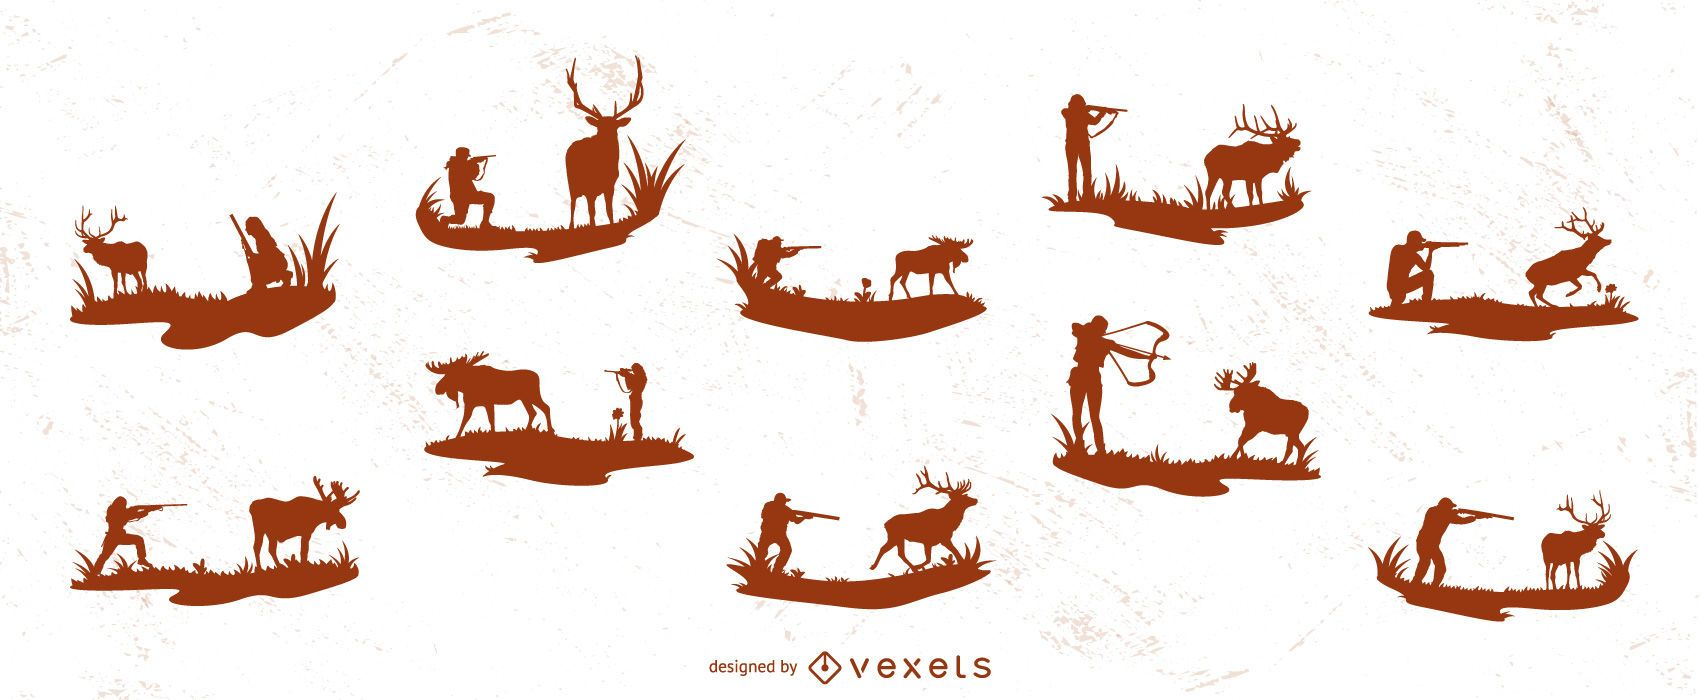 Deer hunting silhouette collection